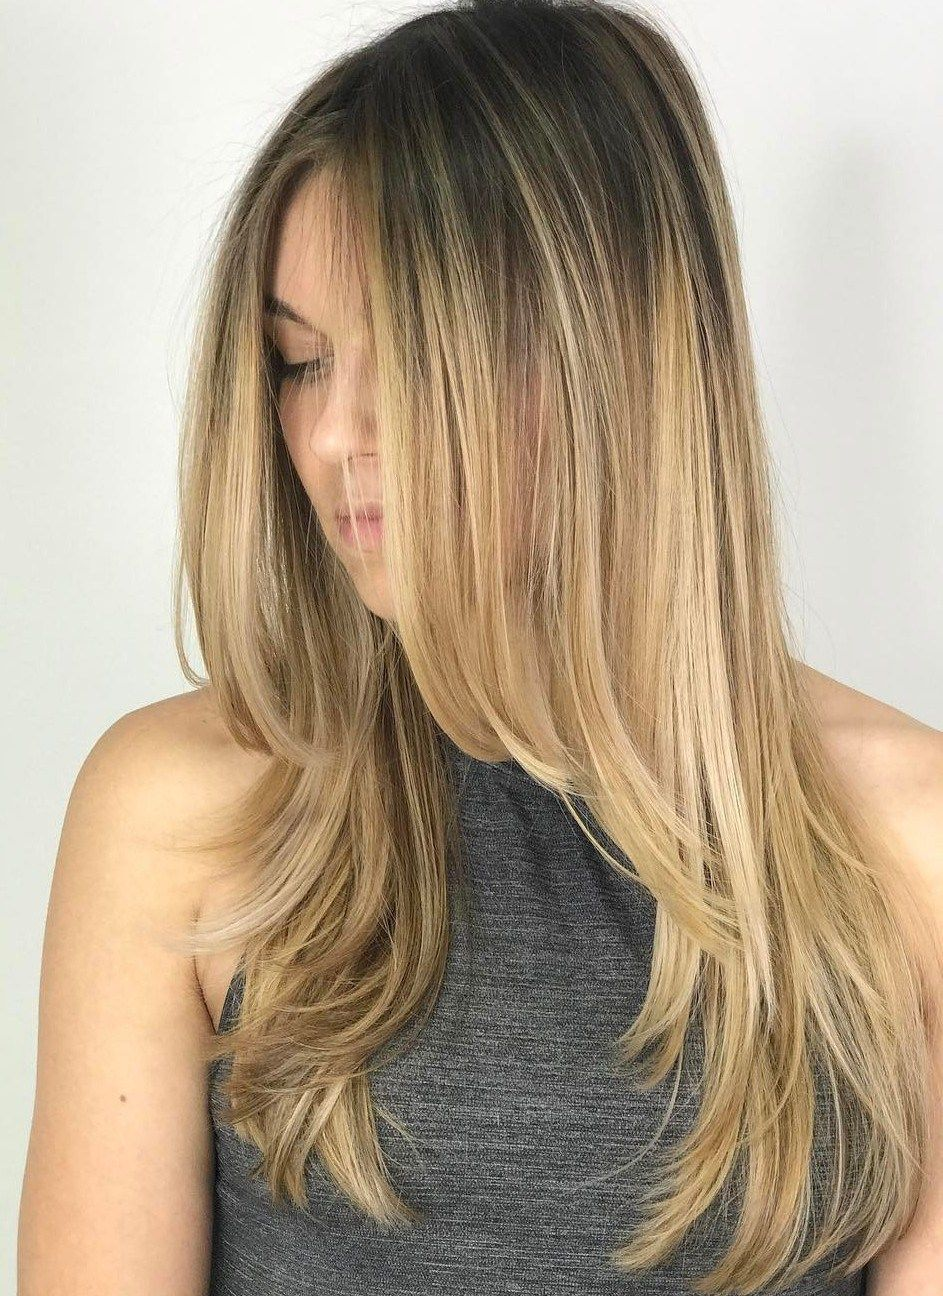 80 Cute Layered Hairstyles And Cuts For Long Hair Hair Ideas